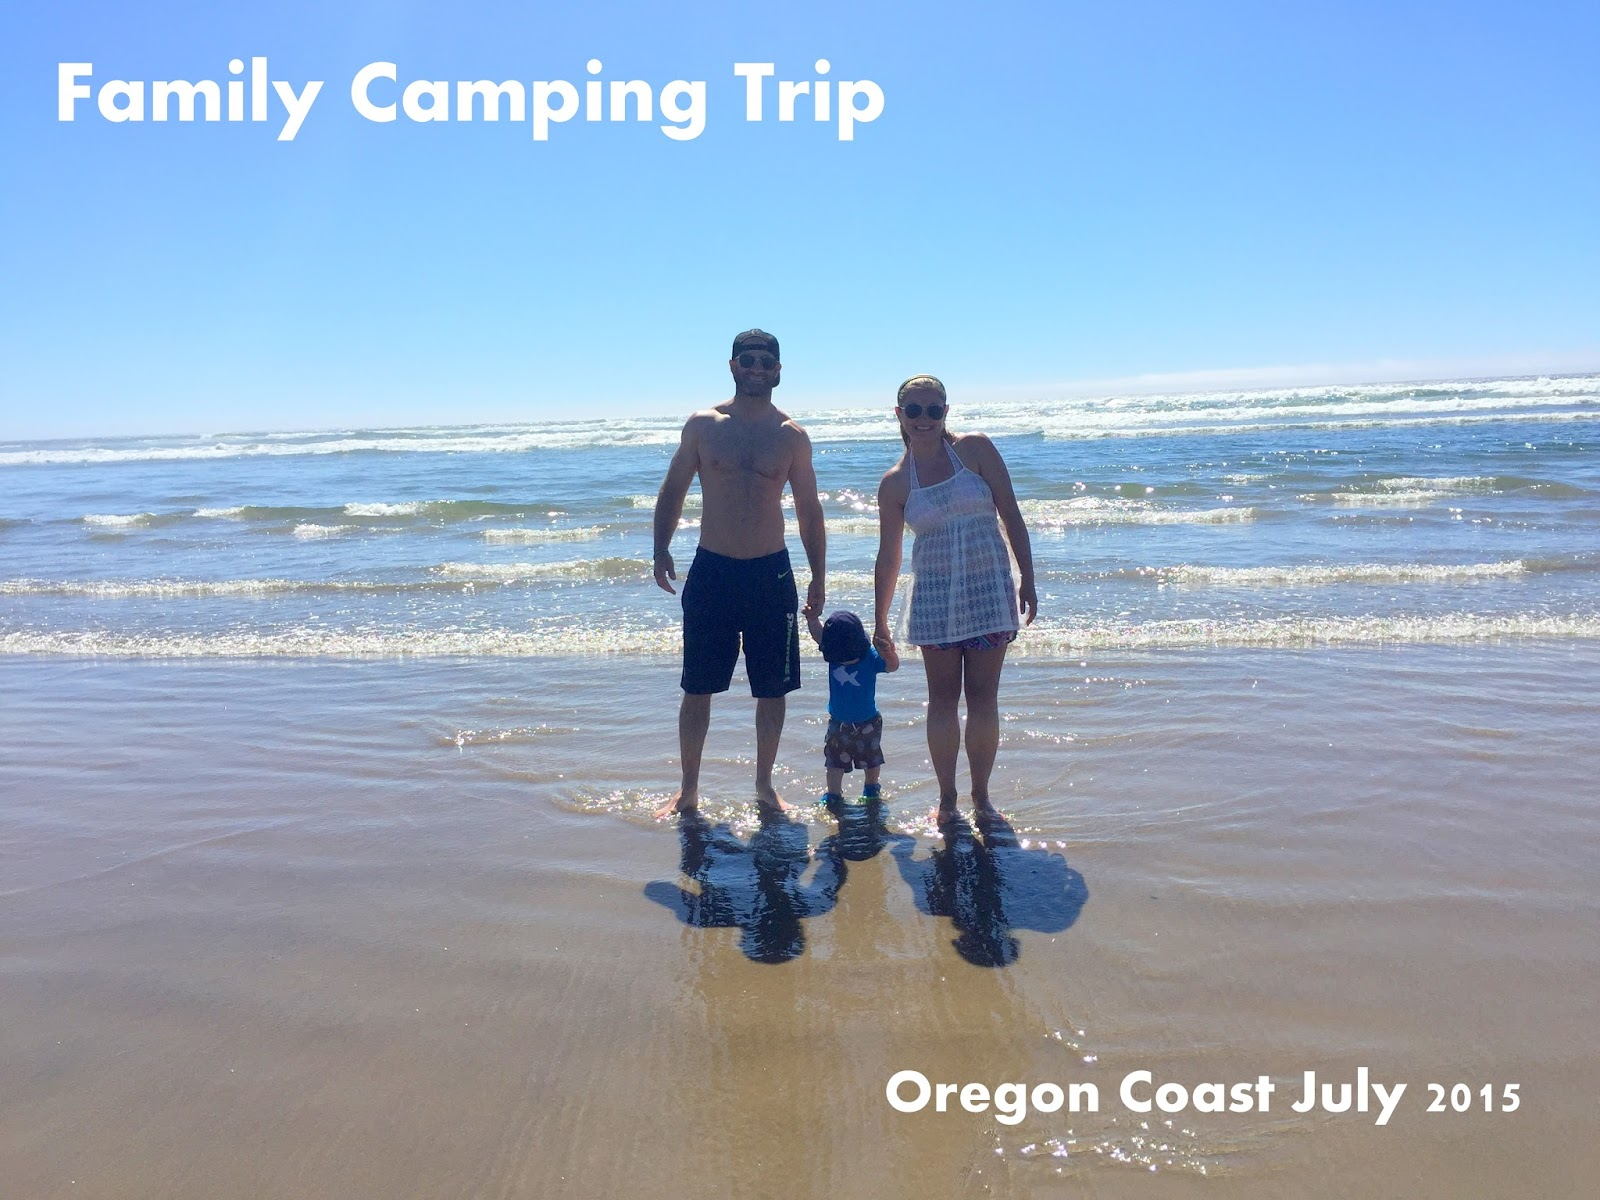 After Spending A Few Days At Fort Stevens We Headed South To Cannon Beach One Of The Eight Most Adorable Towns In Country According ABC News